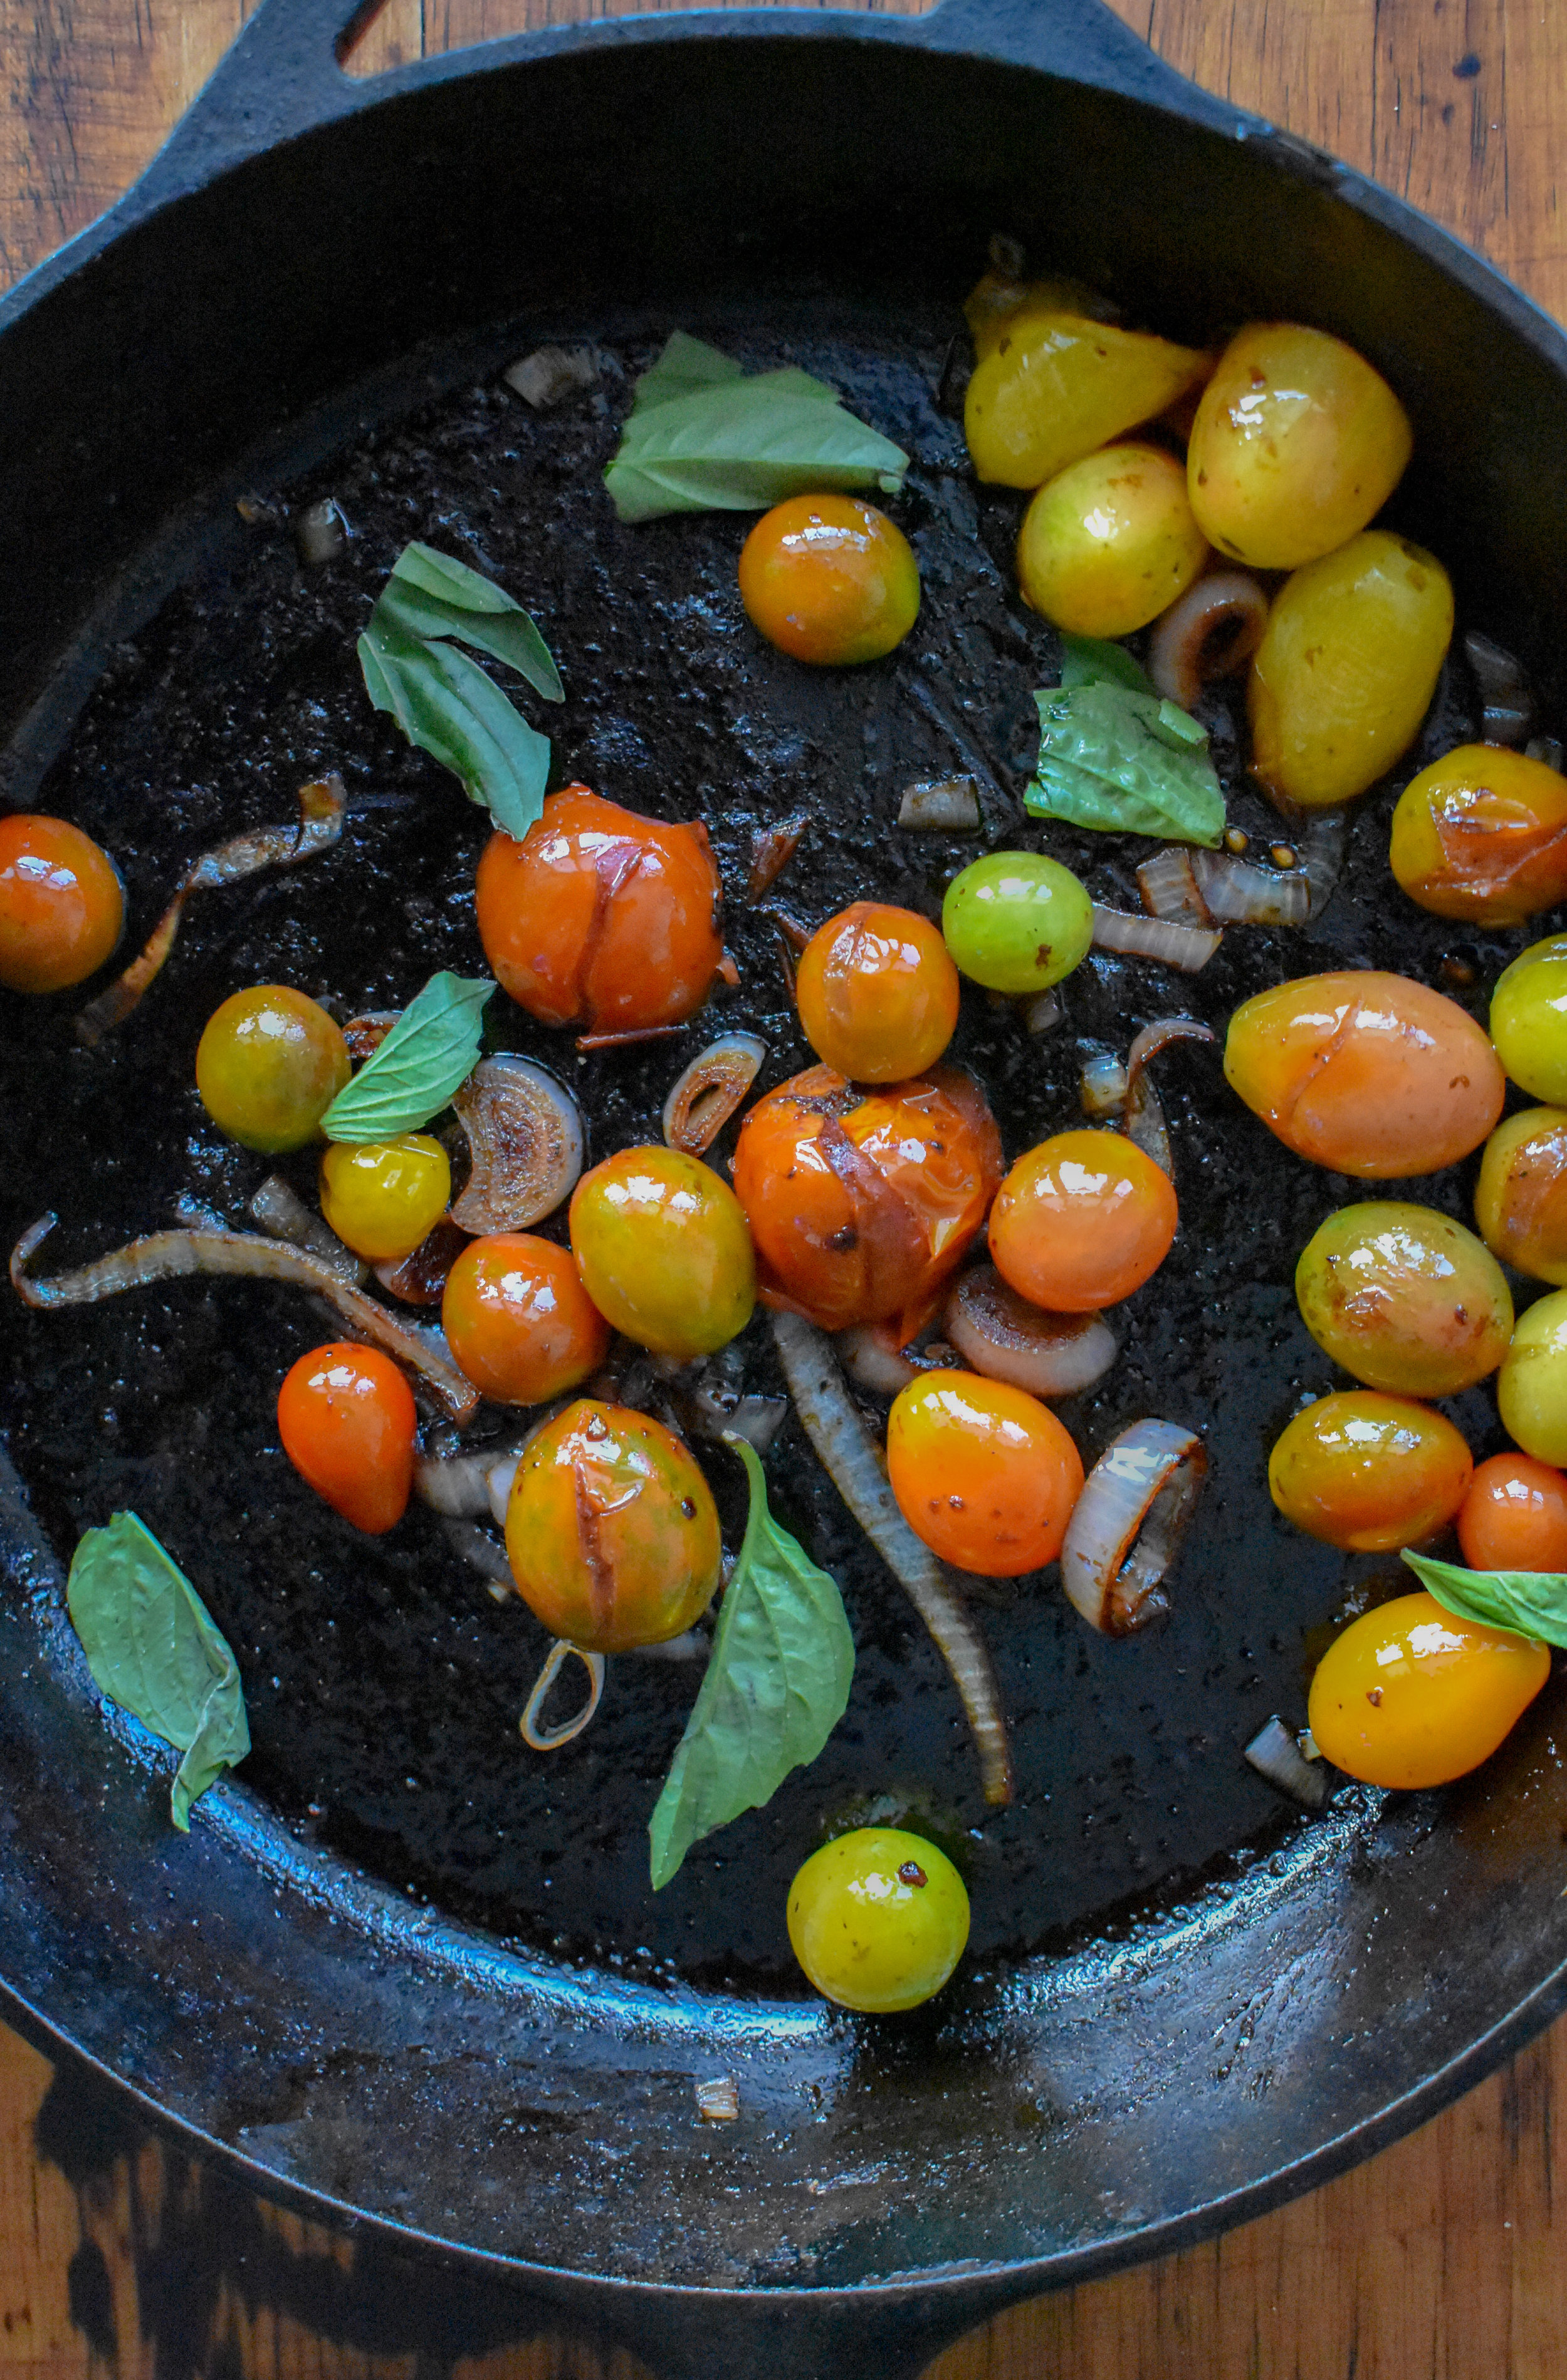 2. While the potatoes are cooking, heat olive oil for tomatoes in a castiron or large frying pan. Heat for 90 seconds and then add shallots + garlic. Cook for 2-3 minutes before adding cherry tomatoes. Continue to cook over medium heat for 2-3 minutes on each side until it starts to brown and tomatoes start to break open a bit. Add in some fresh basil (optional) after removing from heat. Set aside.